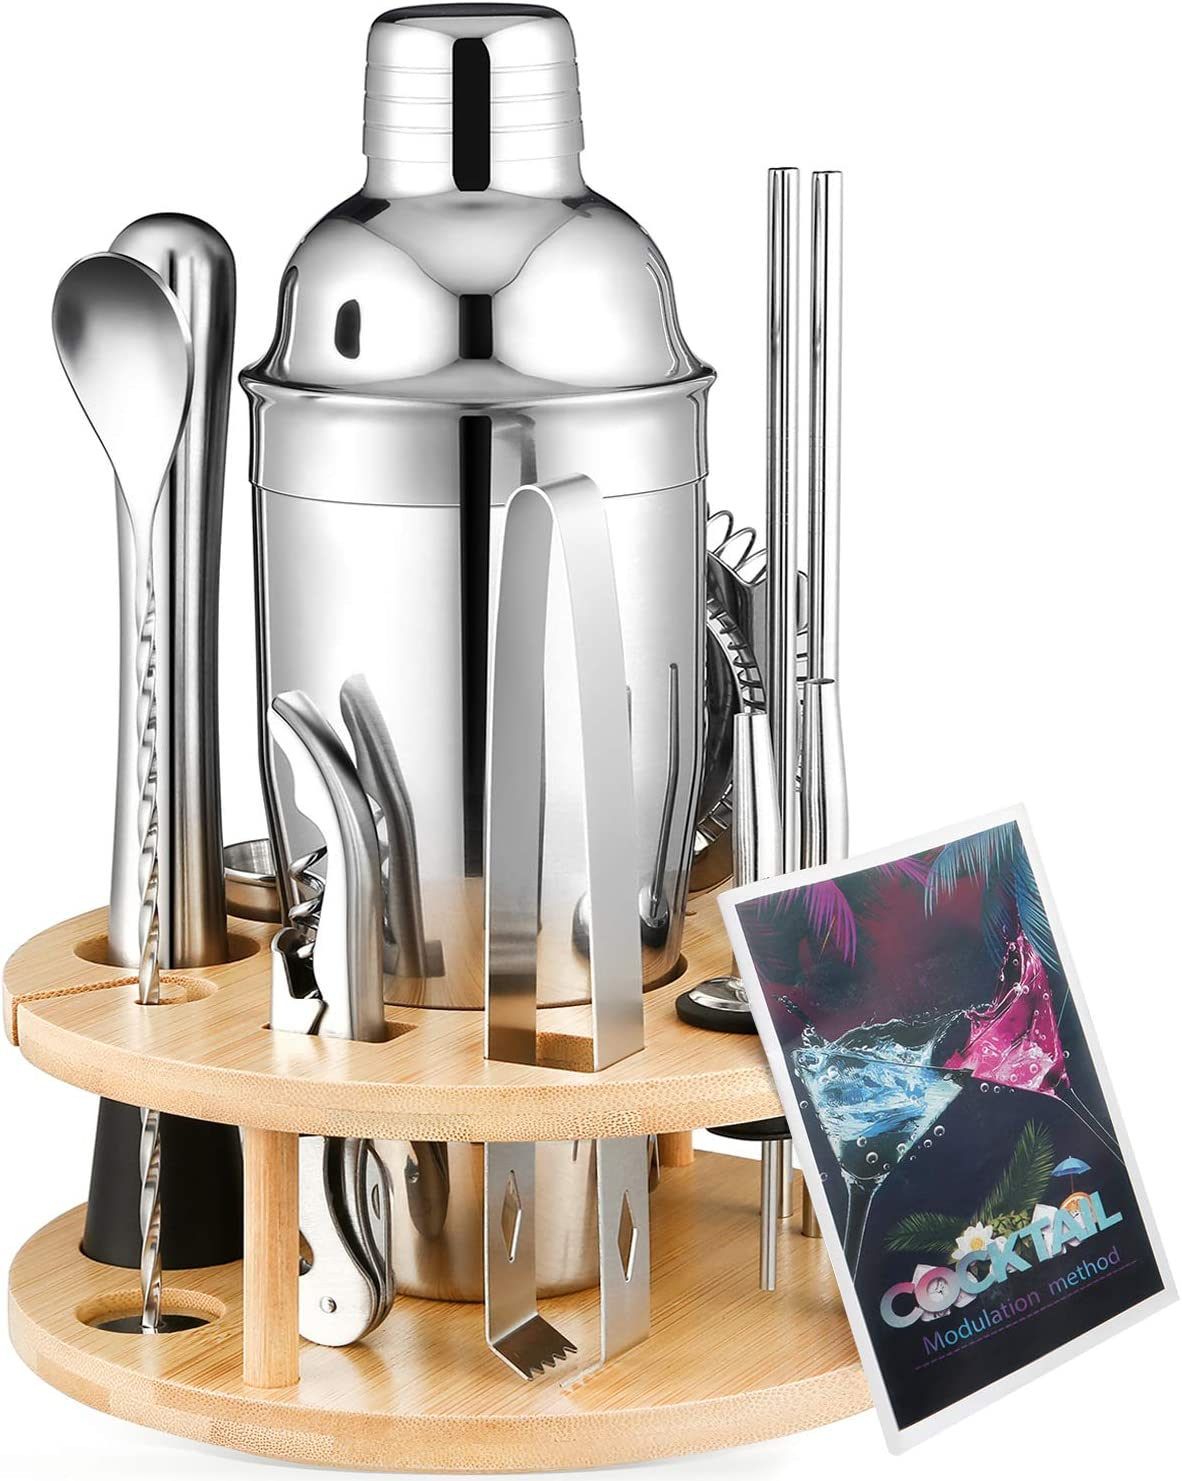 Kostlich Cocktail Shaker Set, 12 Piece Bartender Kit with Revolving Bamboo Stand, 25 oz Stailness Steel Martini Shaker Kit with Jigger, Muddle, Strainers and Recipes for Home Bar Drink Mixing